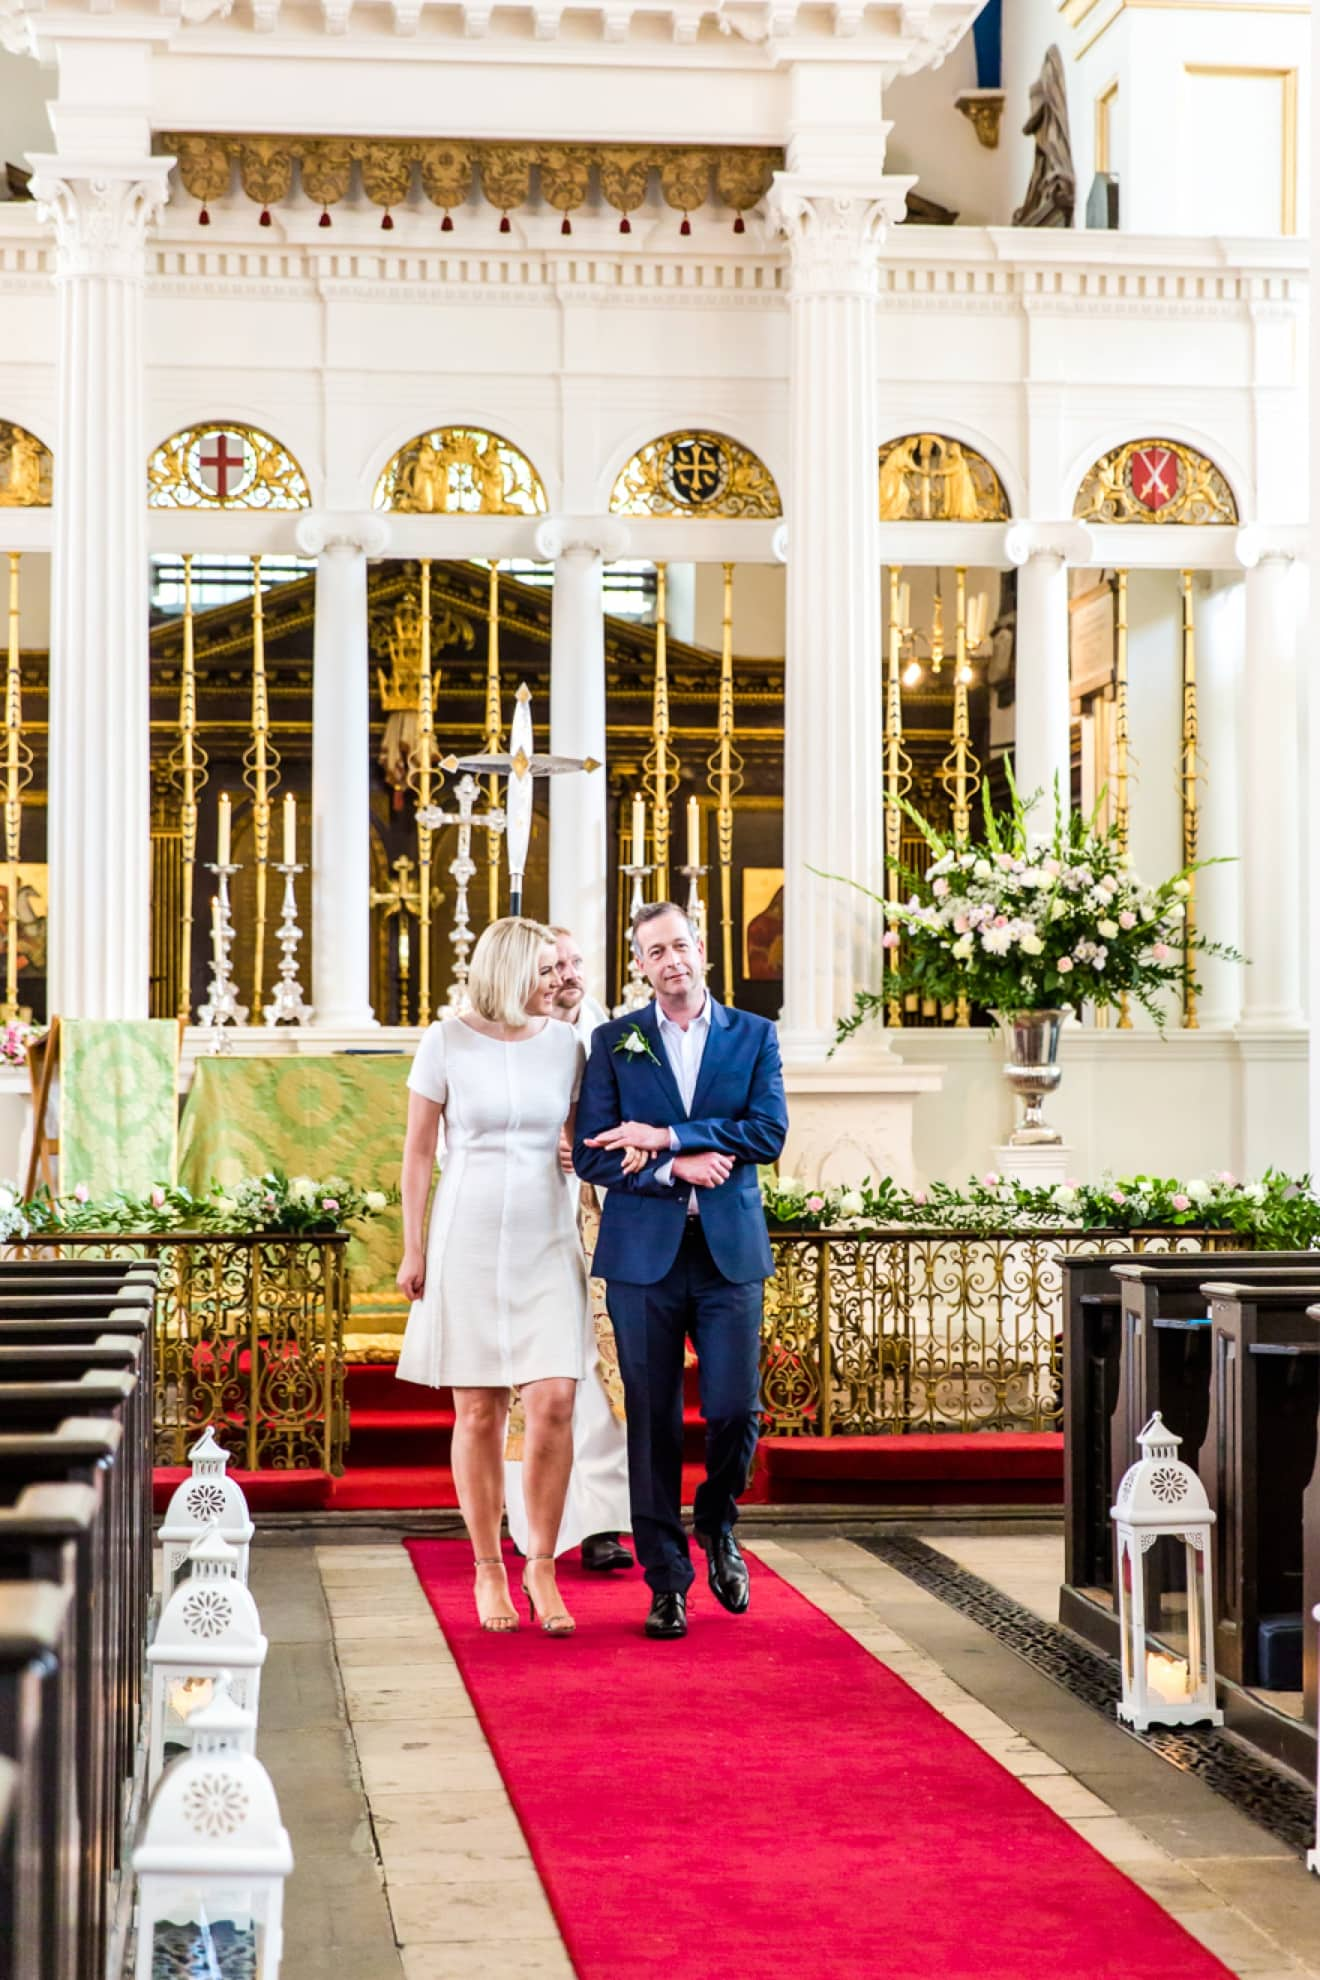 59-London-Kensington-wedding-Eddie-Judd-Photography